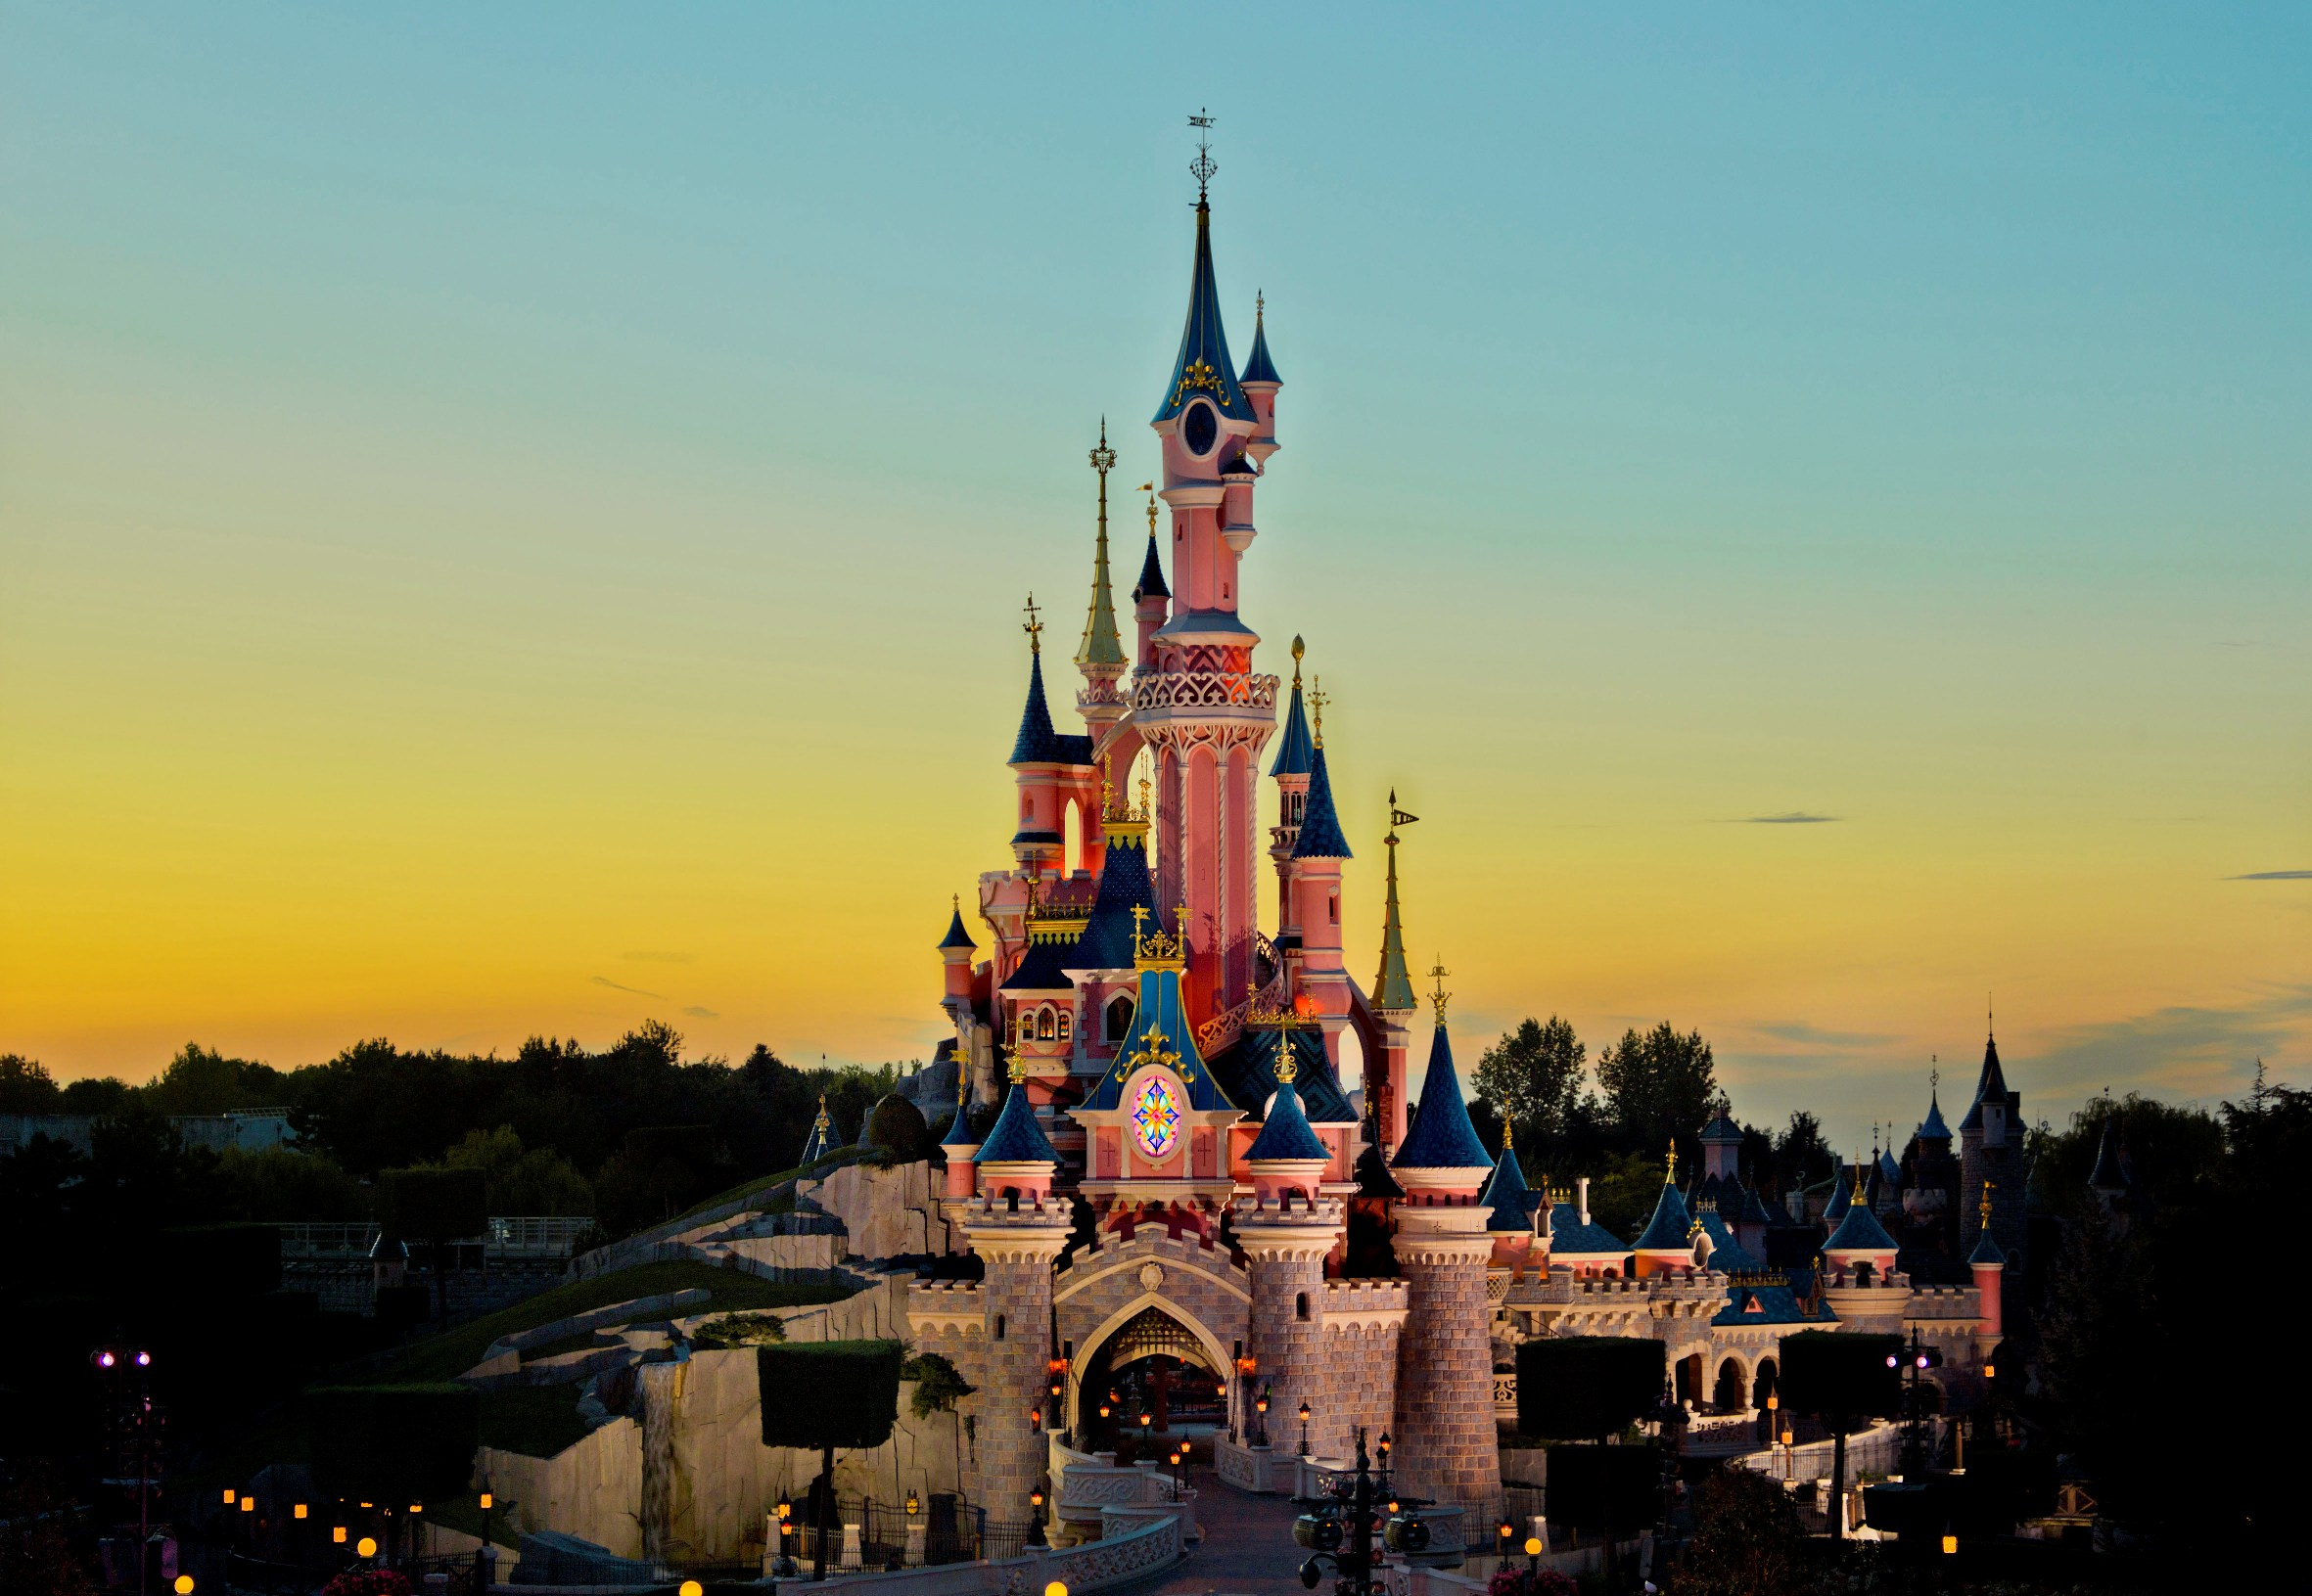 Disneyland Paris Sleeping Beauty Castle - Dusk